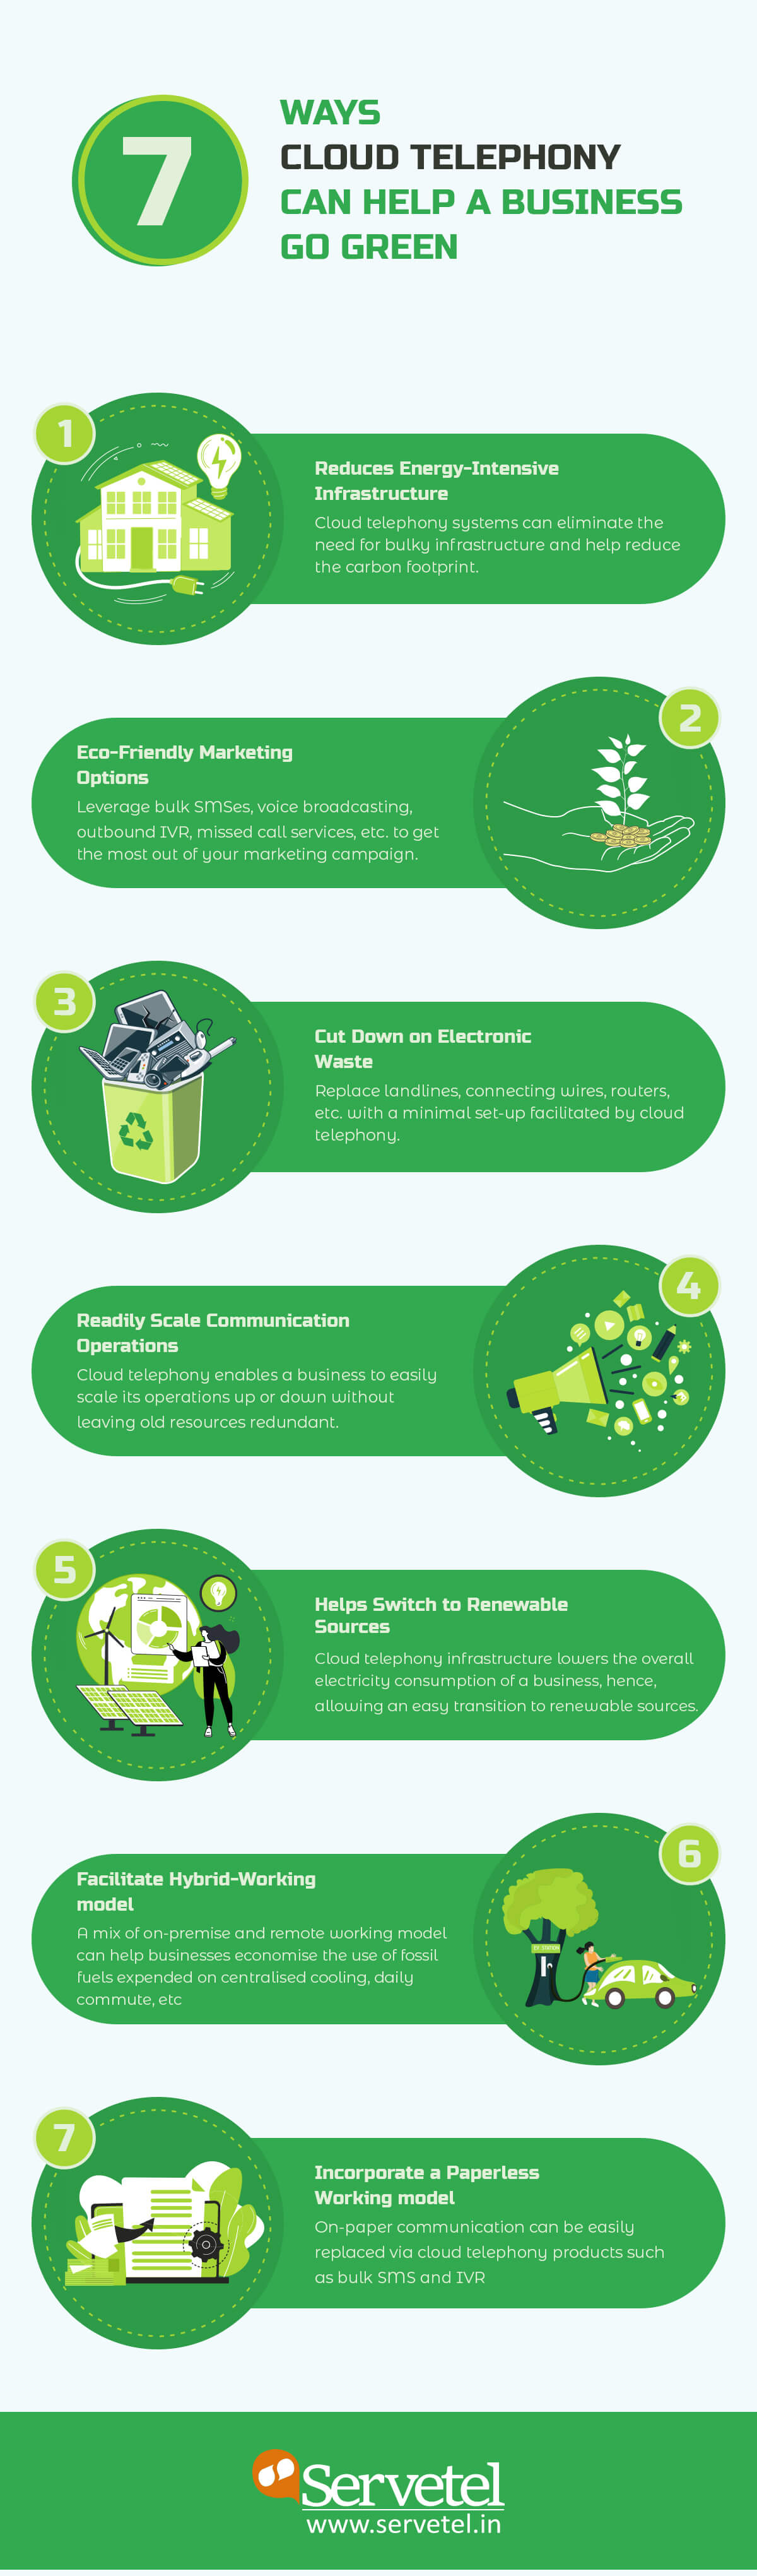 Infographic for the ways cloud telephony can help businesses go green